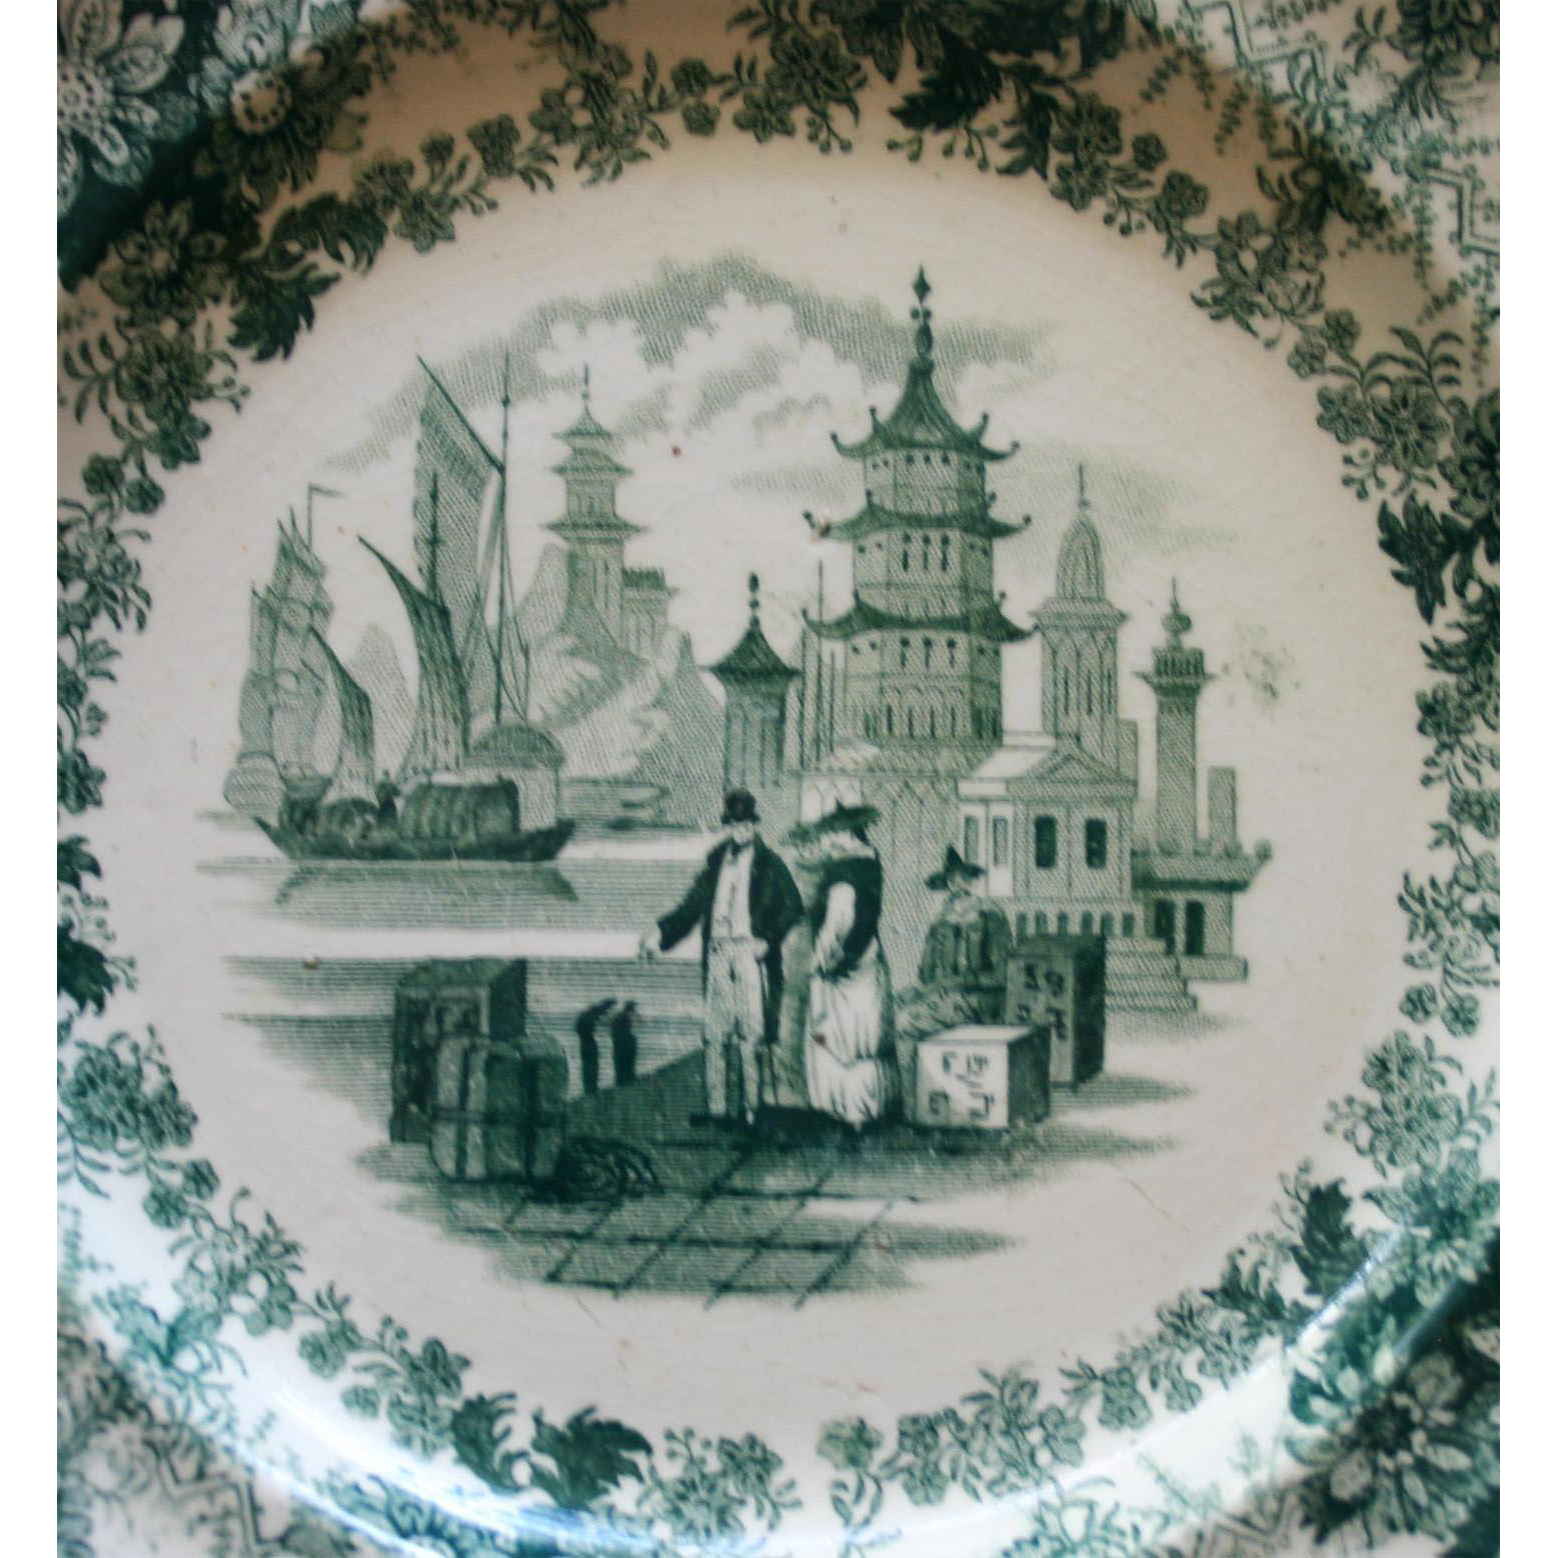 Three Antique Deep Teal Transferware Plates - Commerce by Samuel Alcock 1828-1859